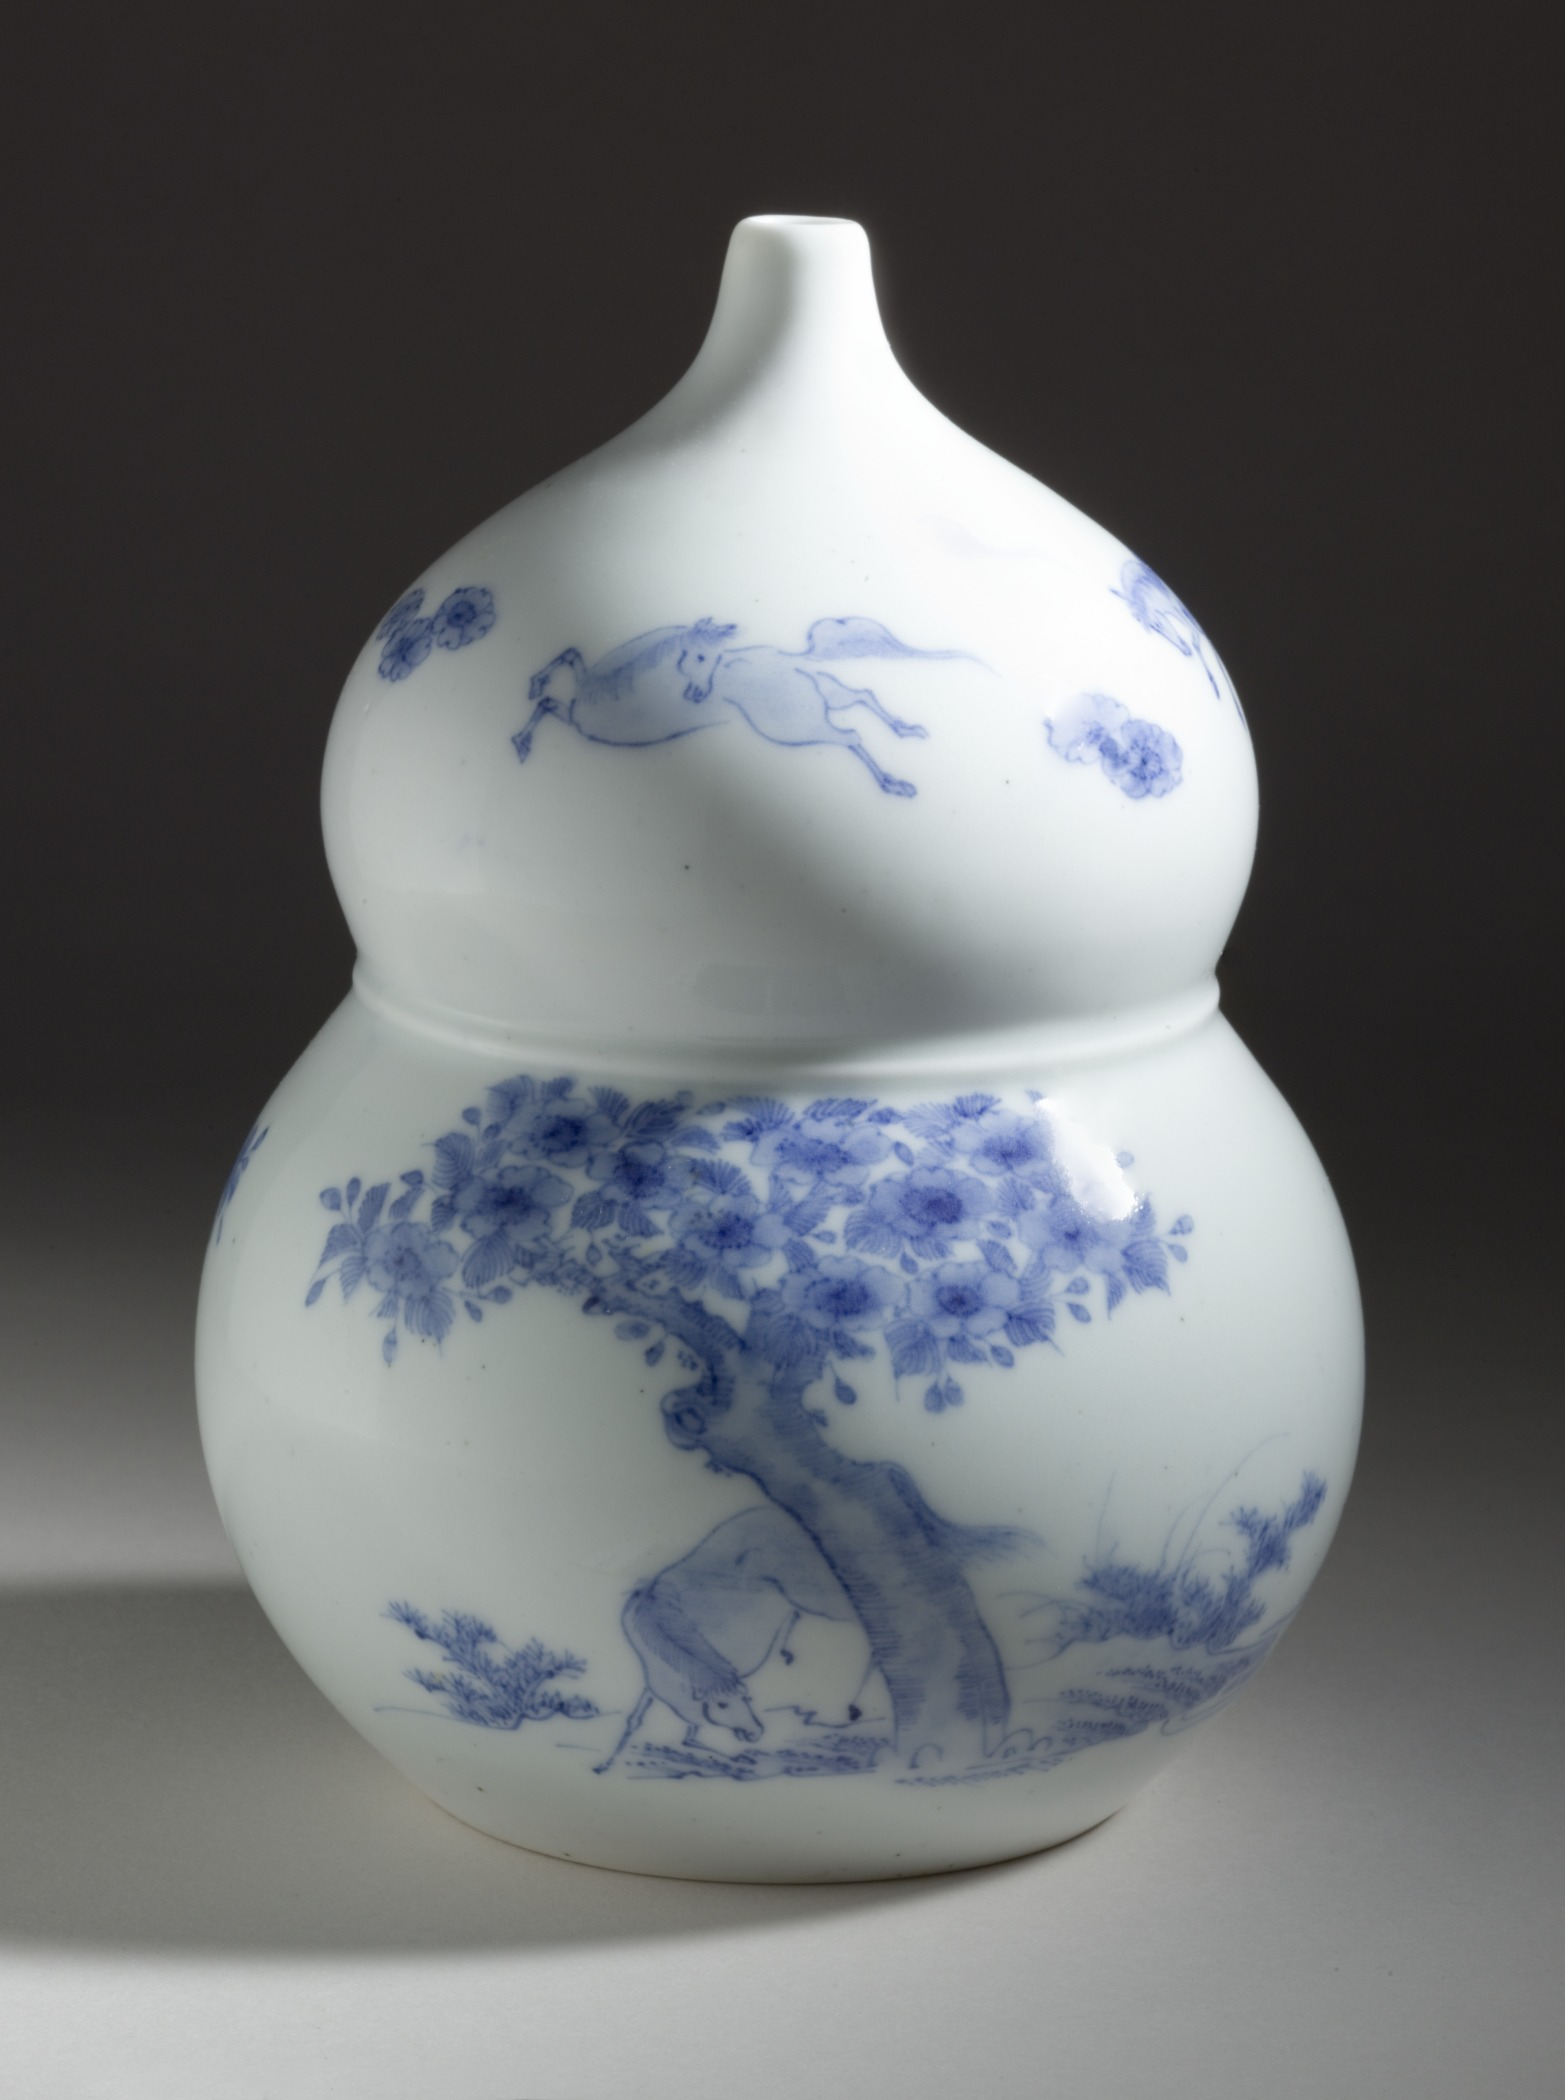 Double-Gourd Shaped Sake Flask with Horses and Flowering Tree Design LACMA M.2005.79.17